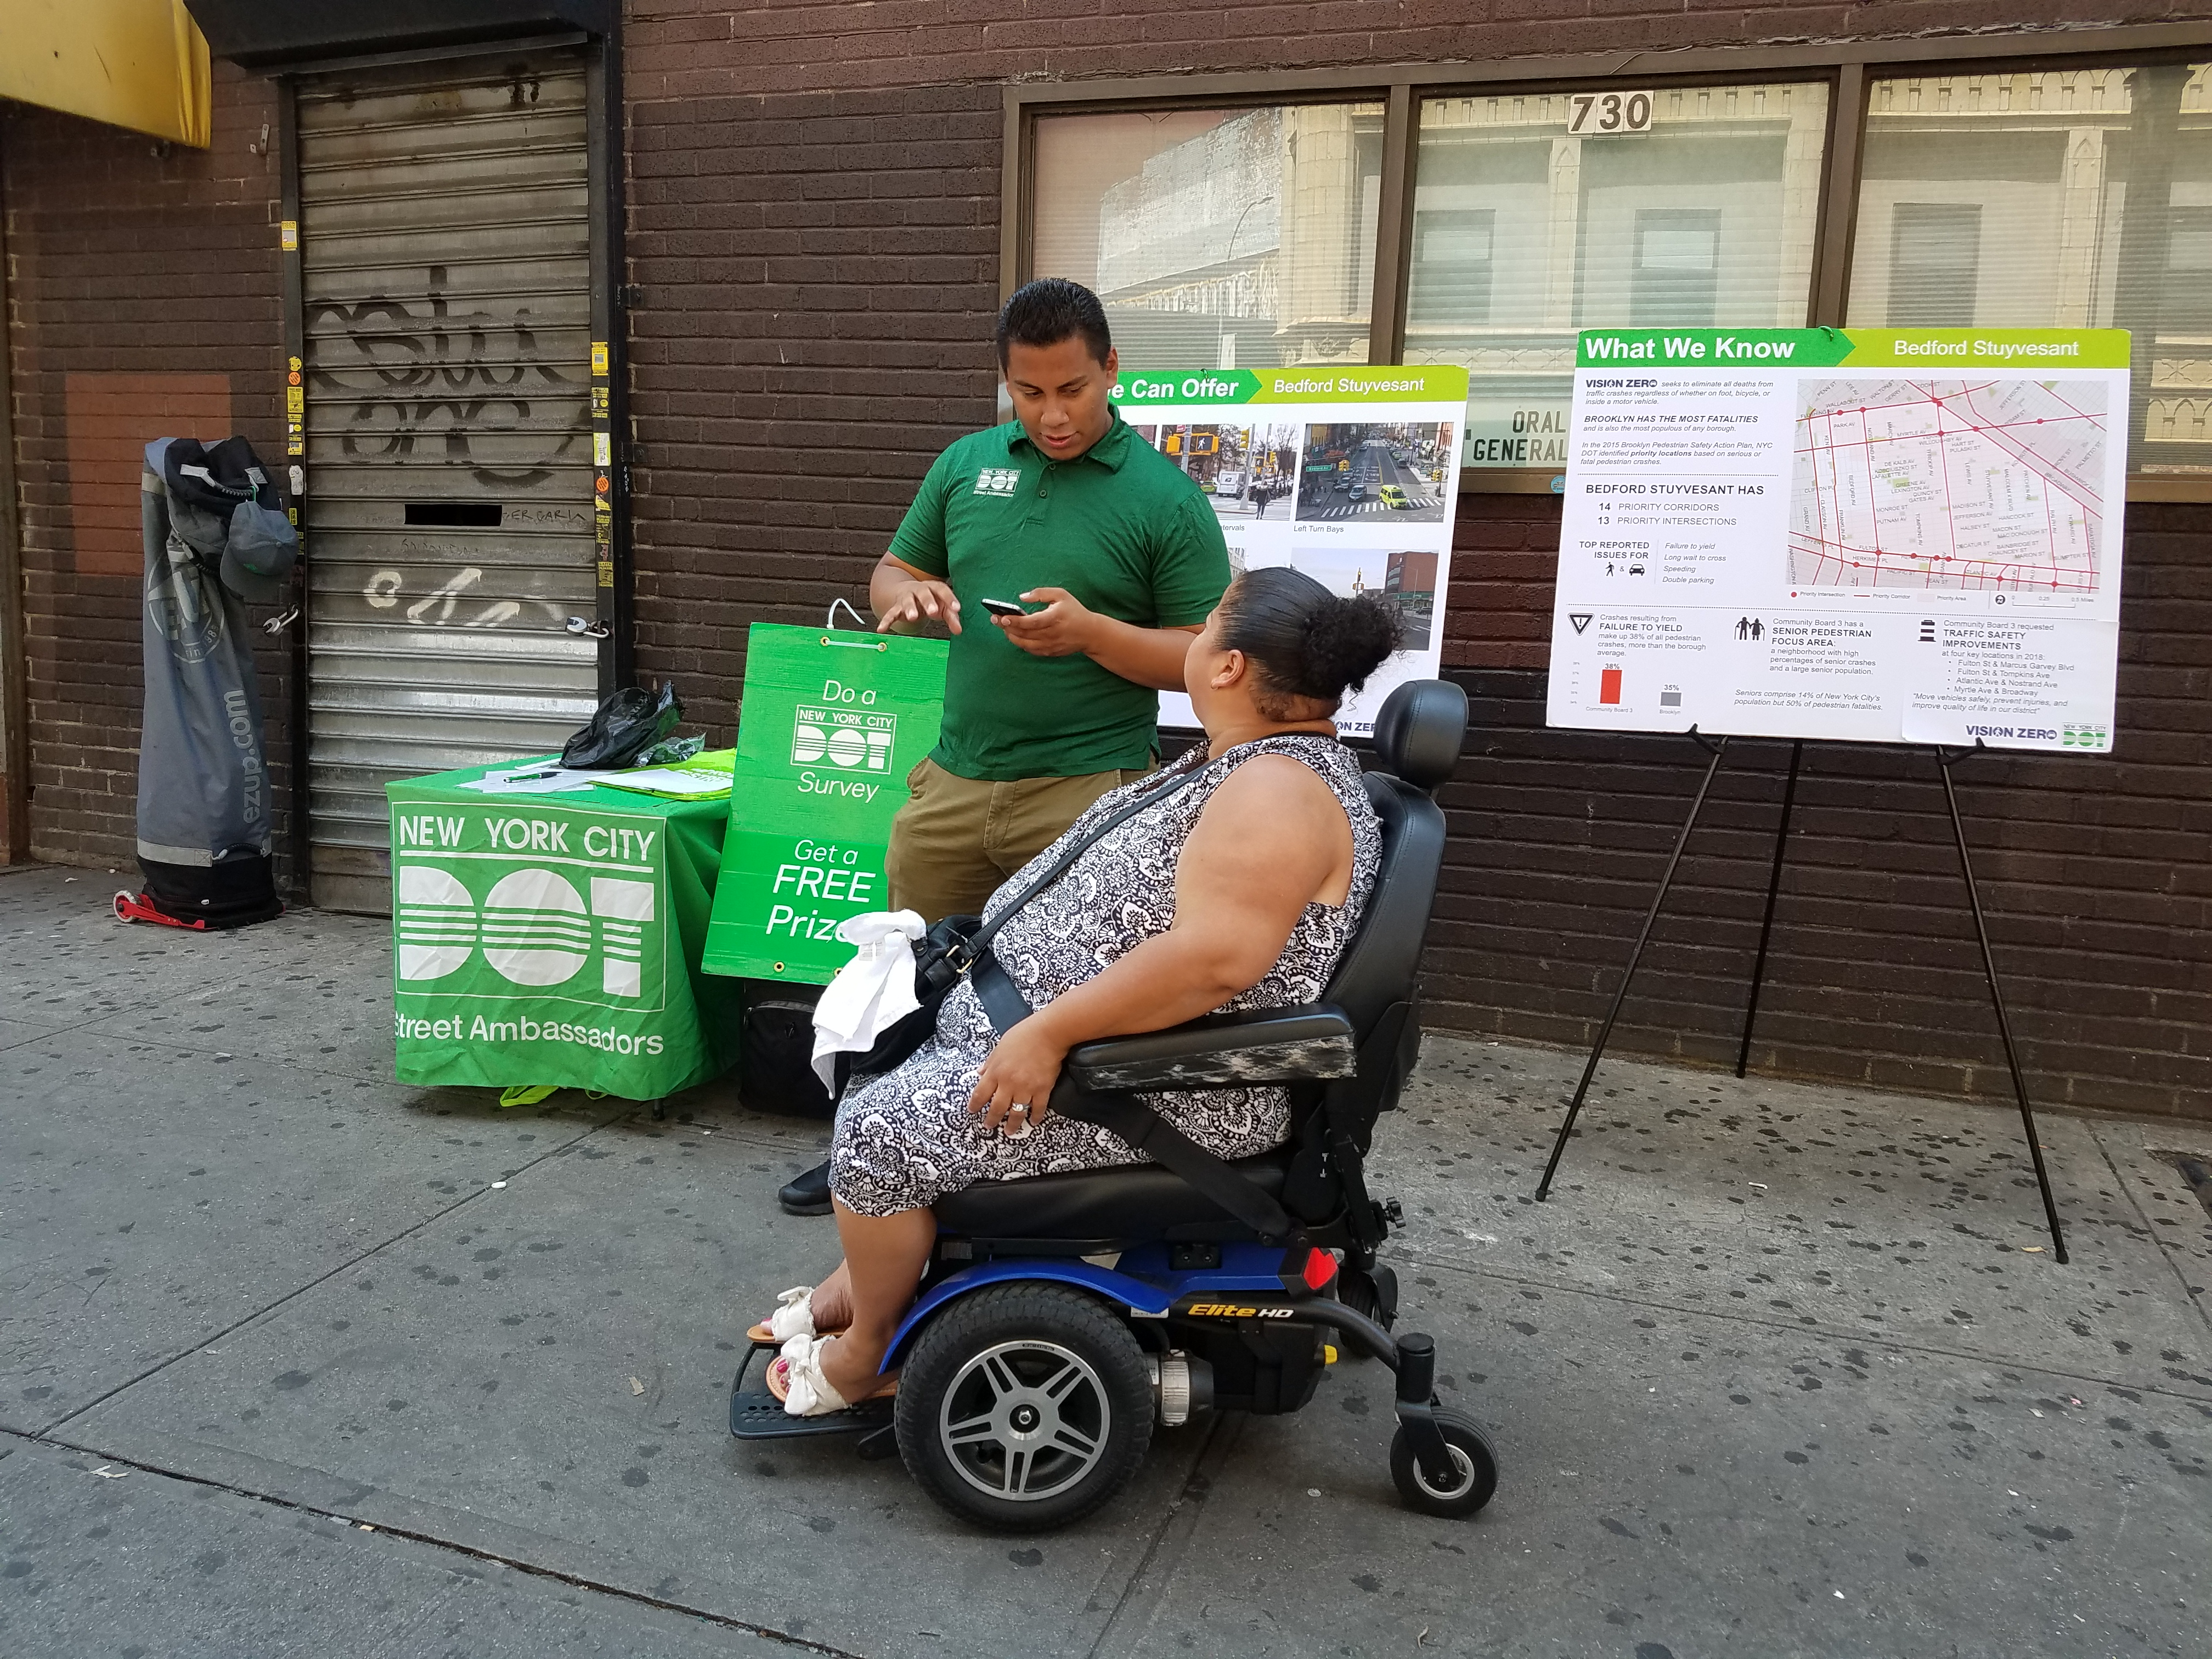 An Ambassador speaks with a person in a motorized wheelchair outside of the Broadway and Flushing JMZ stop.